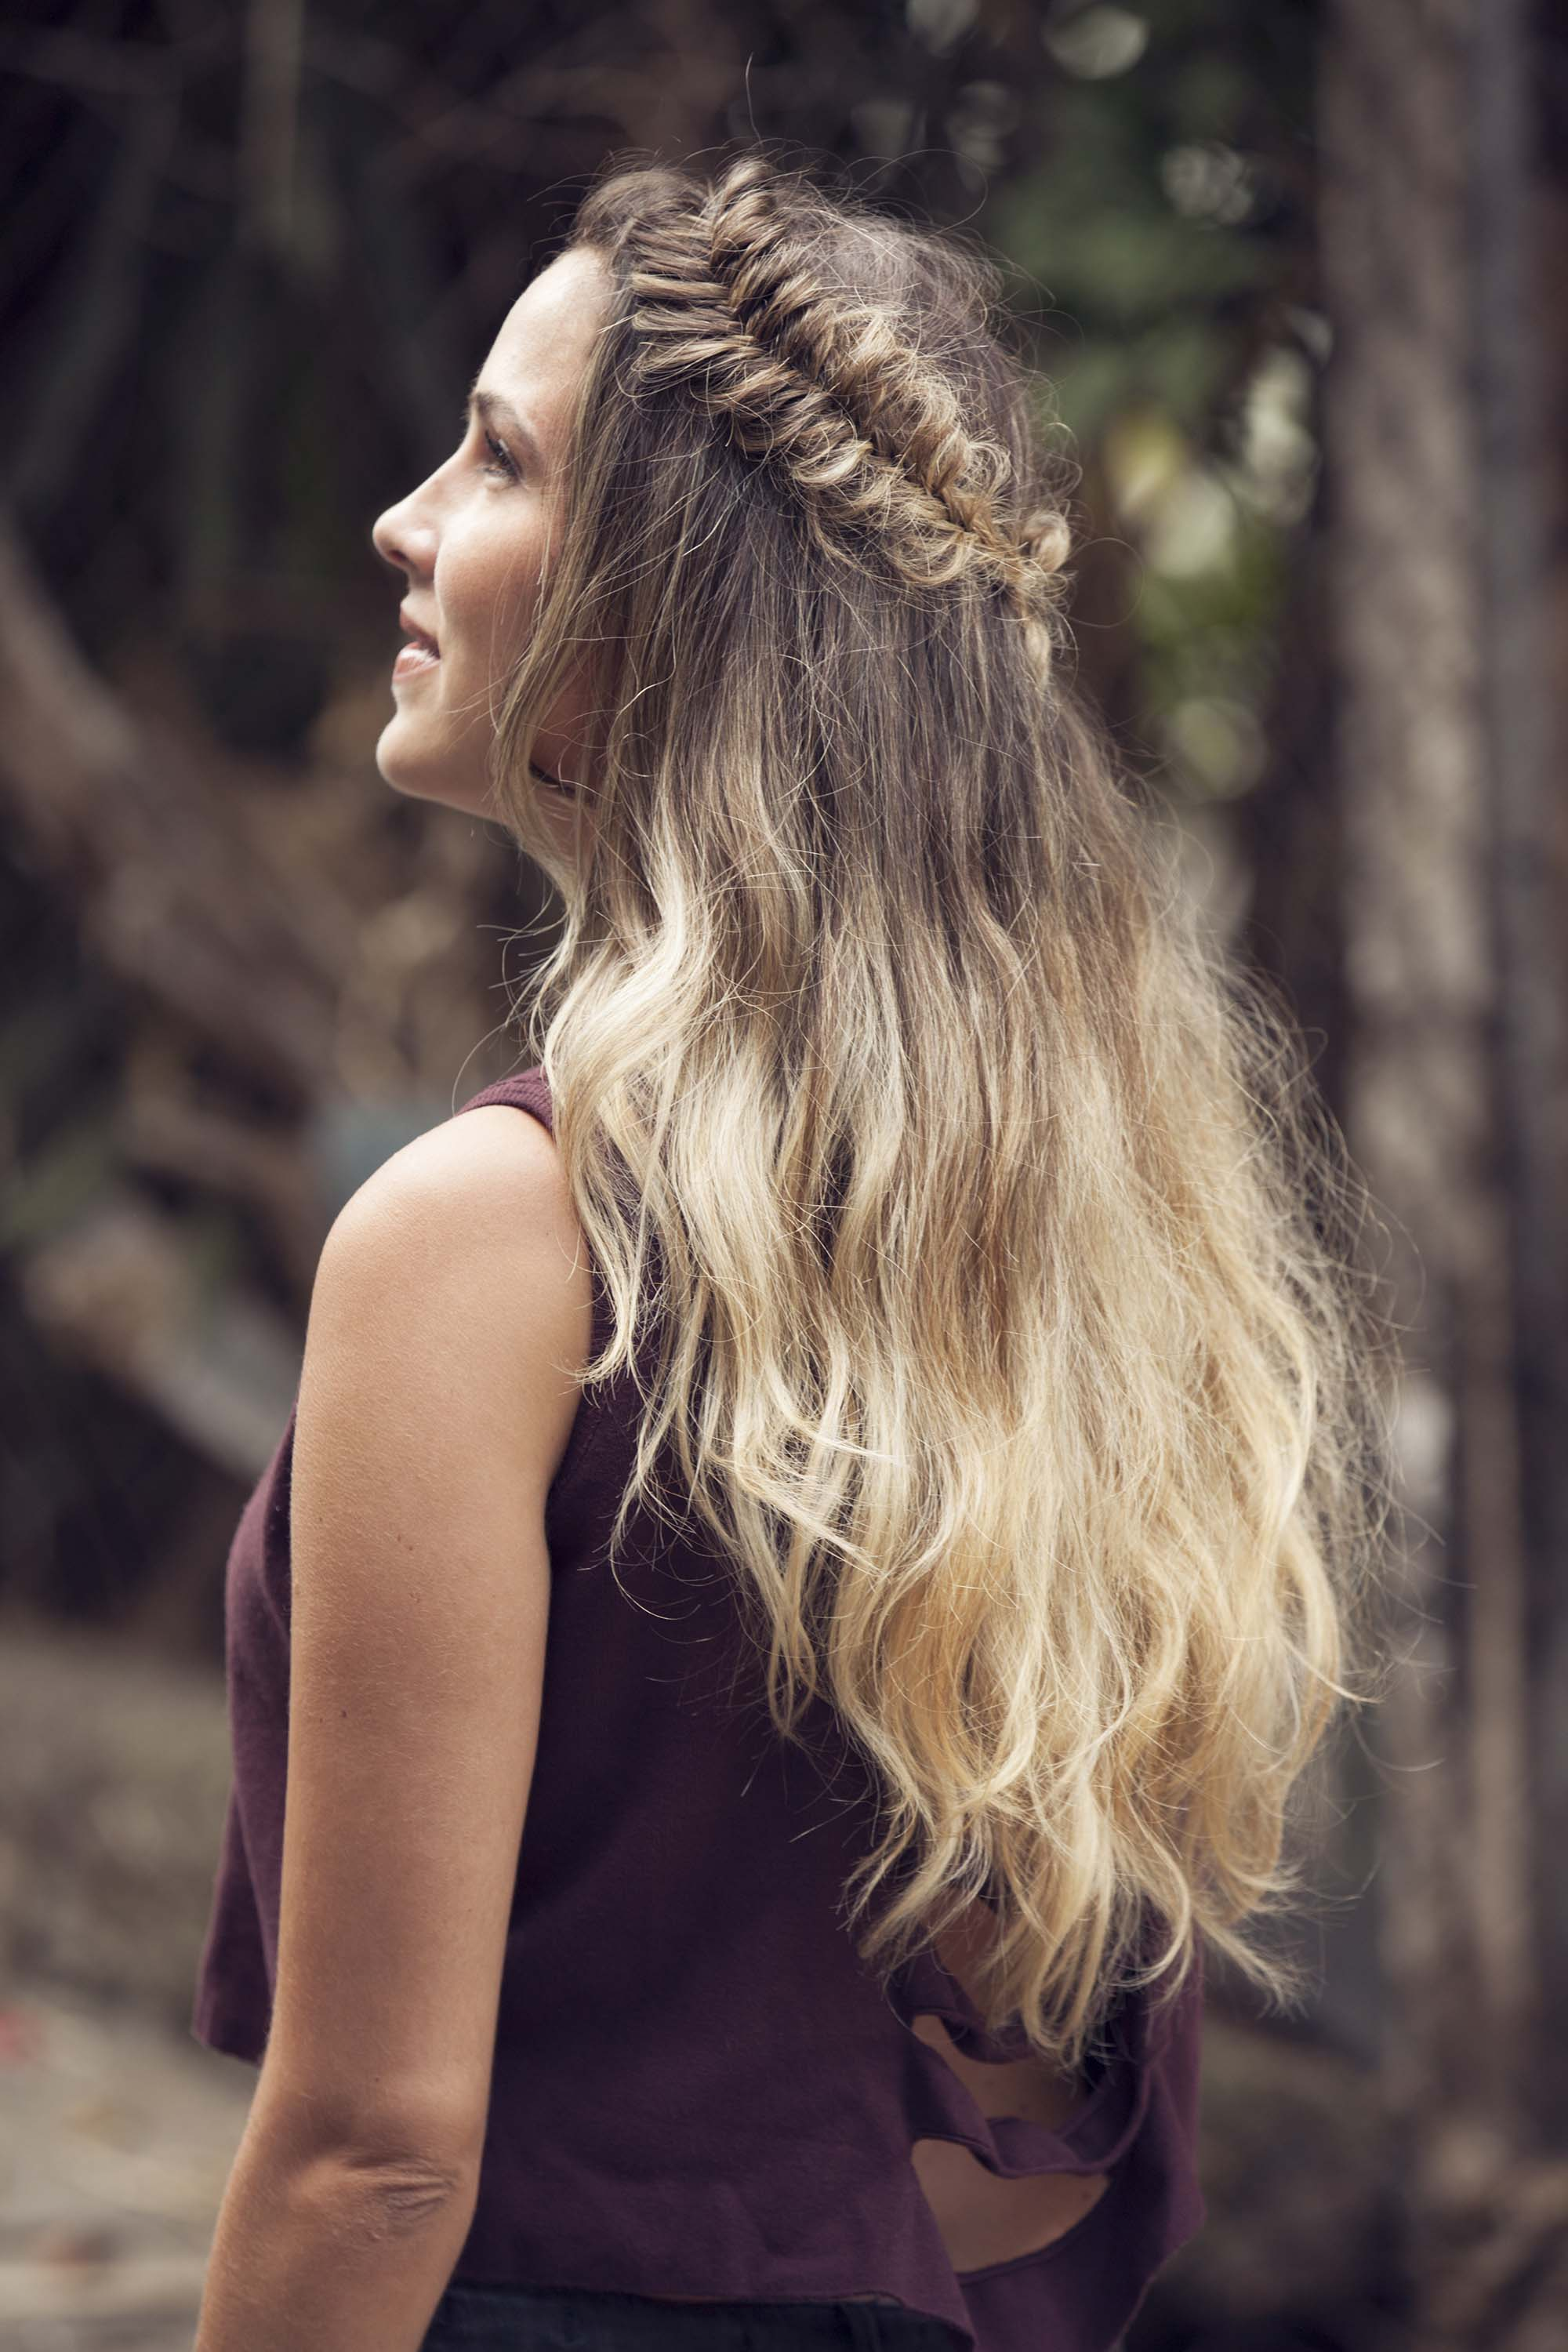 Fishtail braids: Woman with long ombre brown and blonde wavy hair styled with a fishtail crown braid